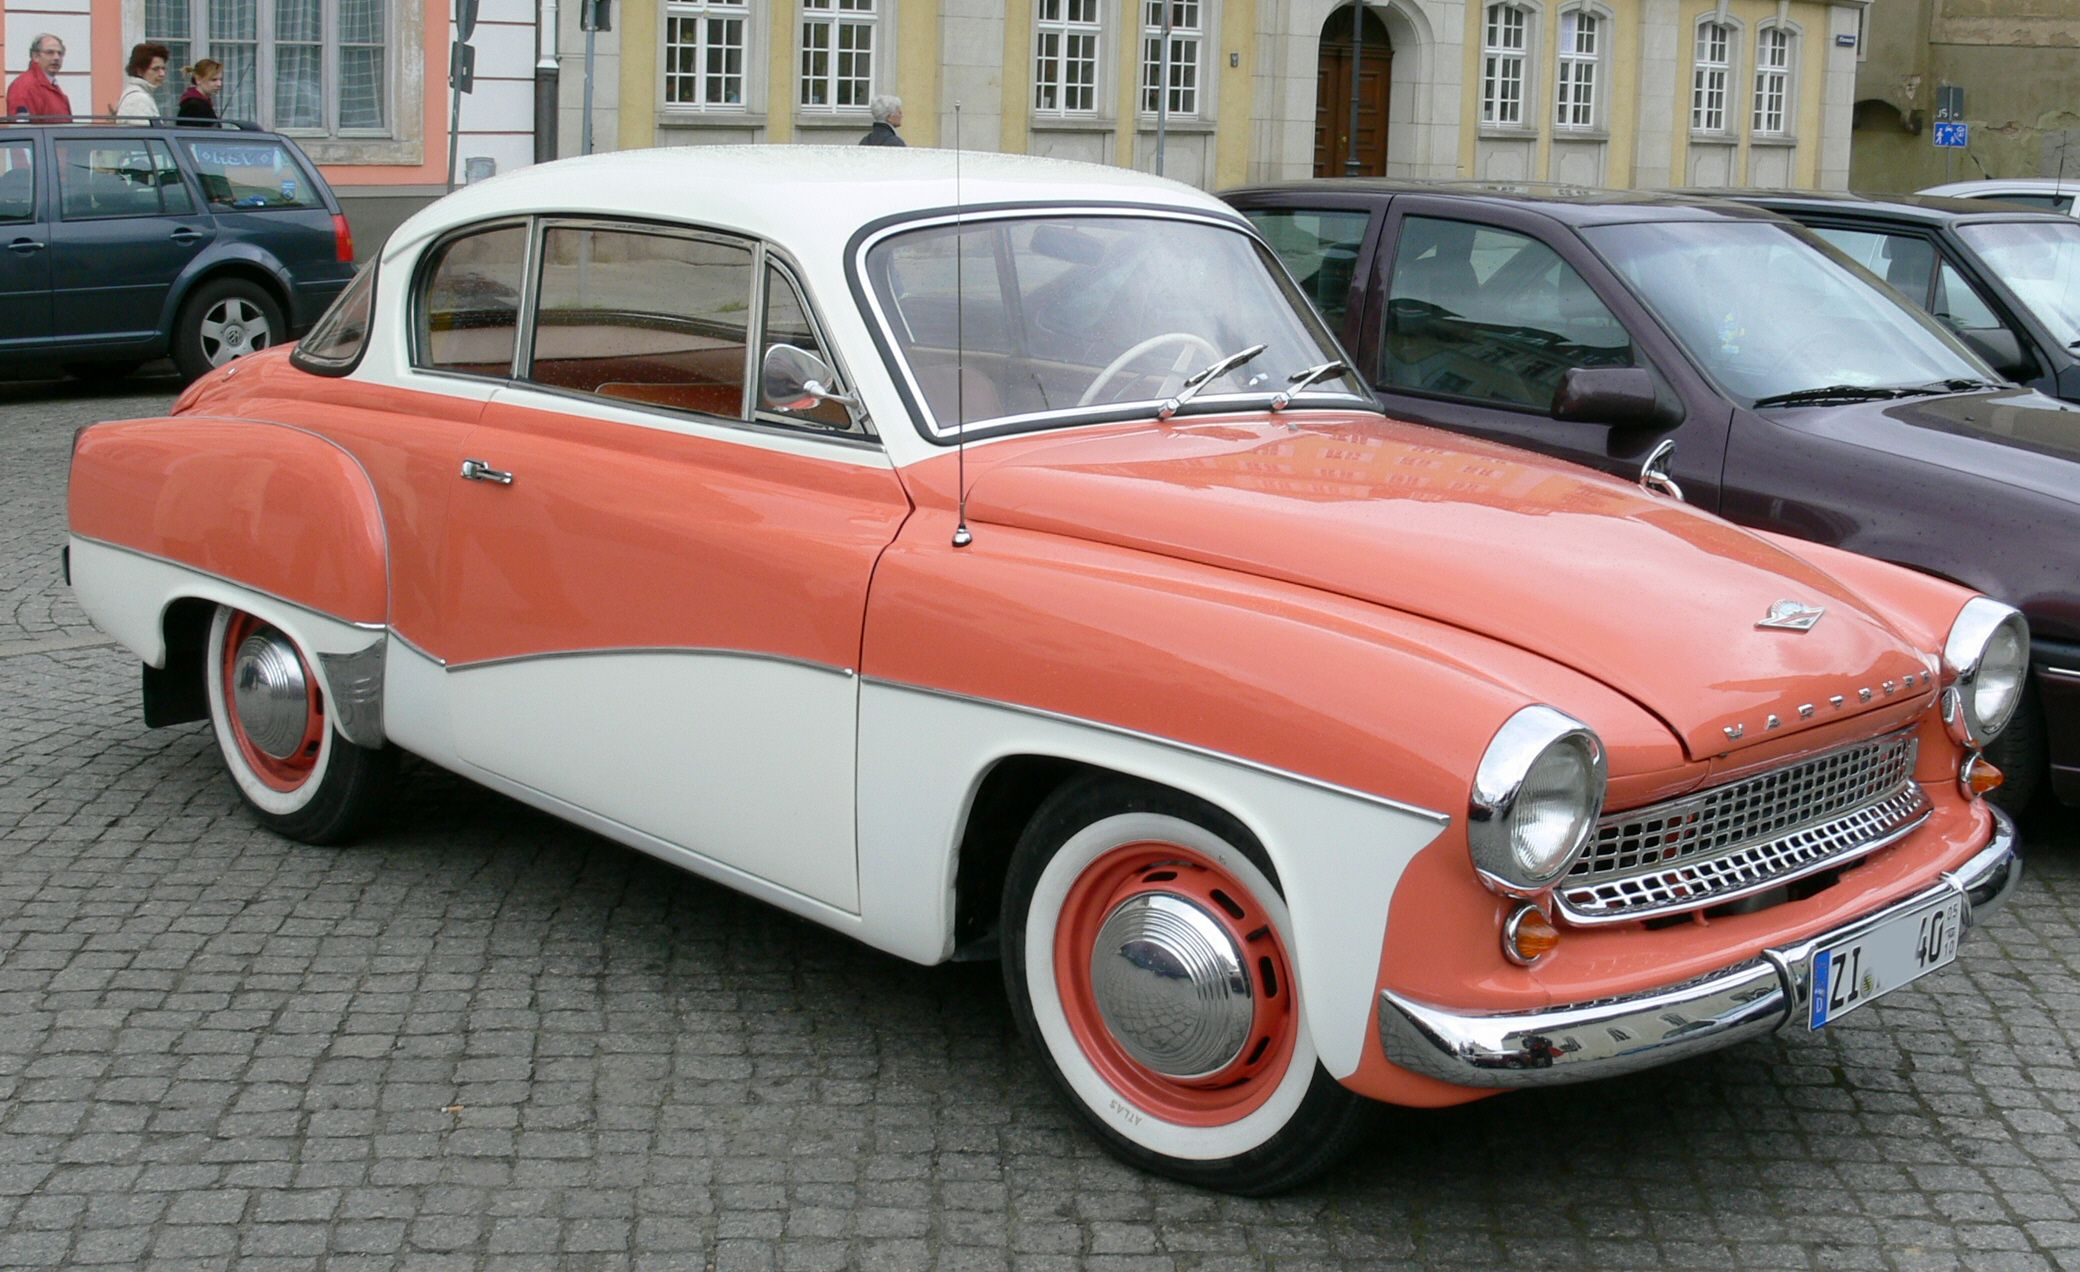 Wartburg 1000 Coup 311 Photos One Of The Models Cars Manufactured By Description From Gomotors I Searched For This On Bing Images